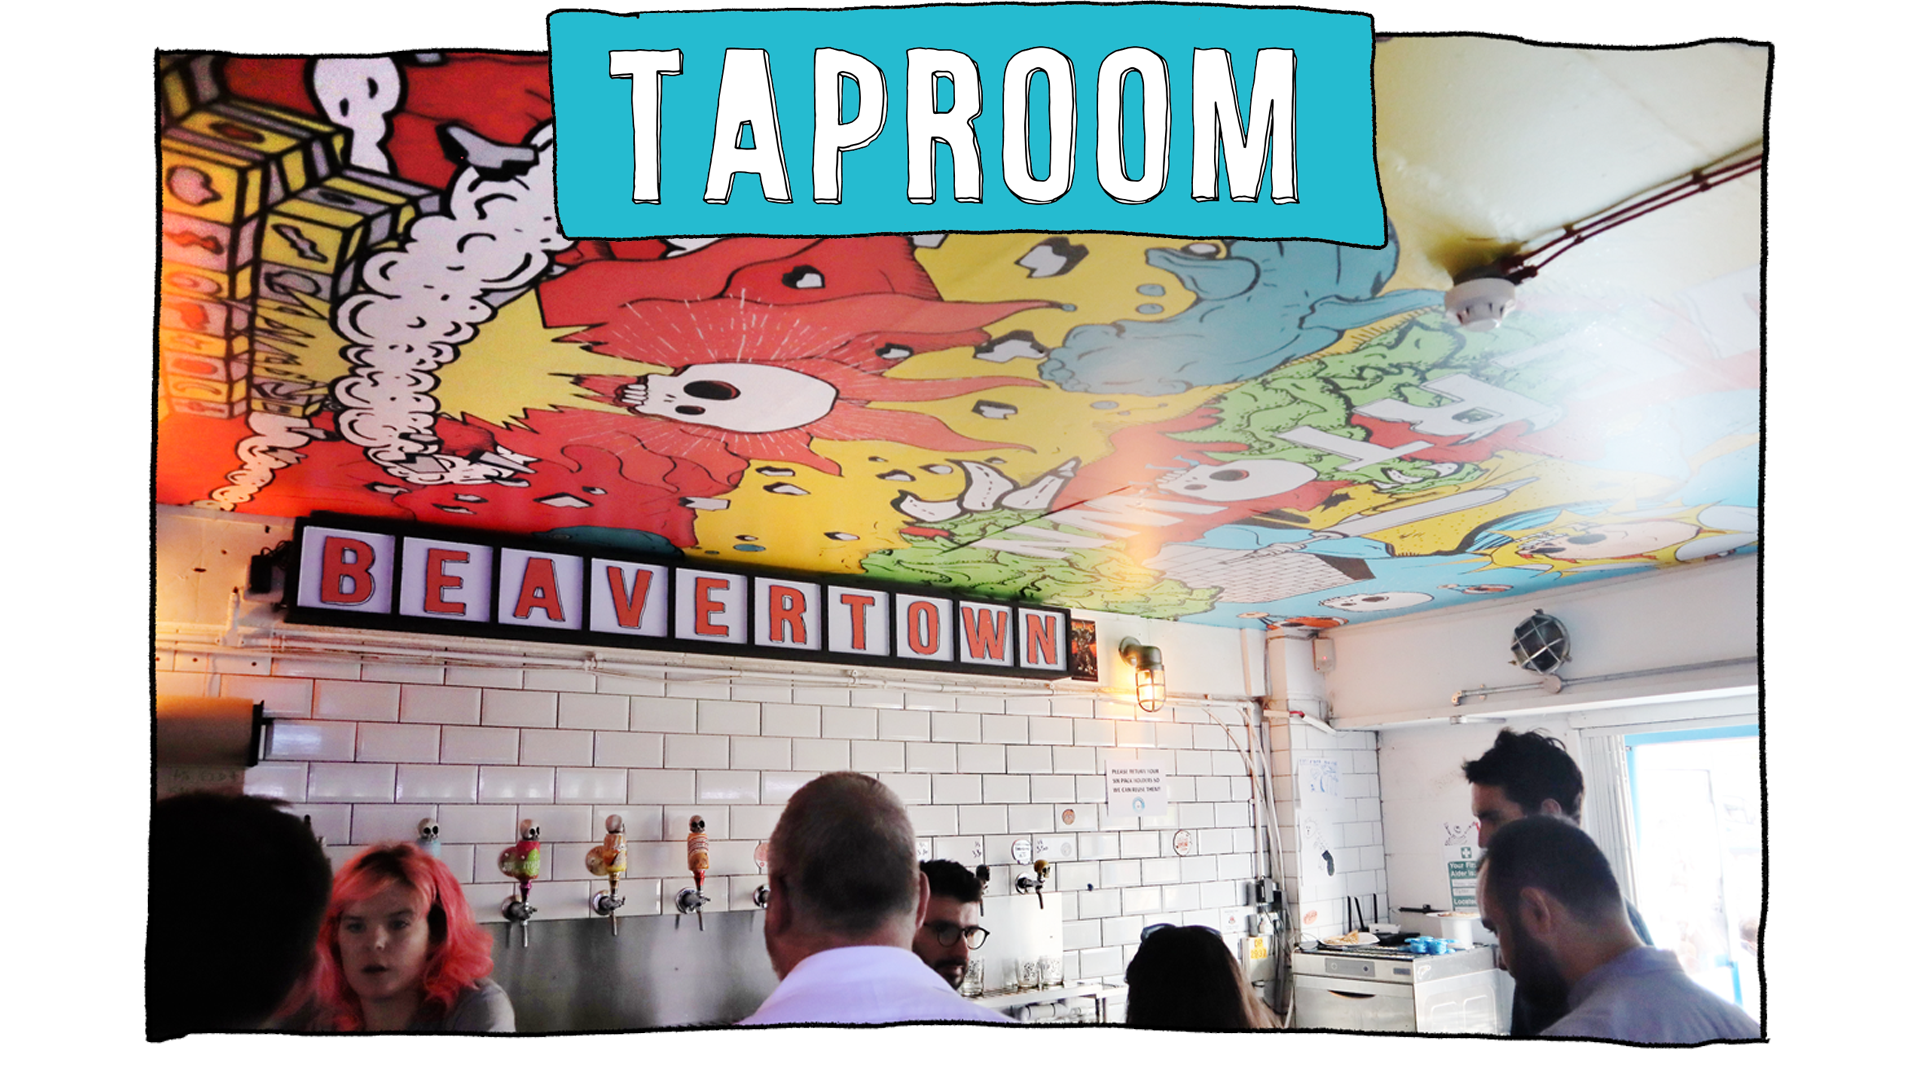 https://beavertownbrewery.co.uk/pages/taproom